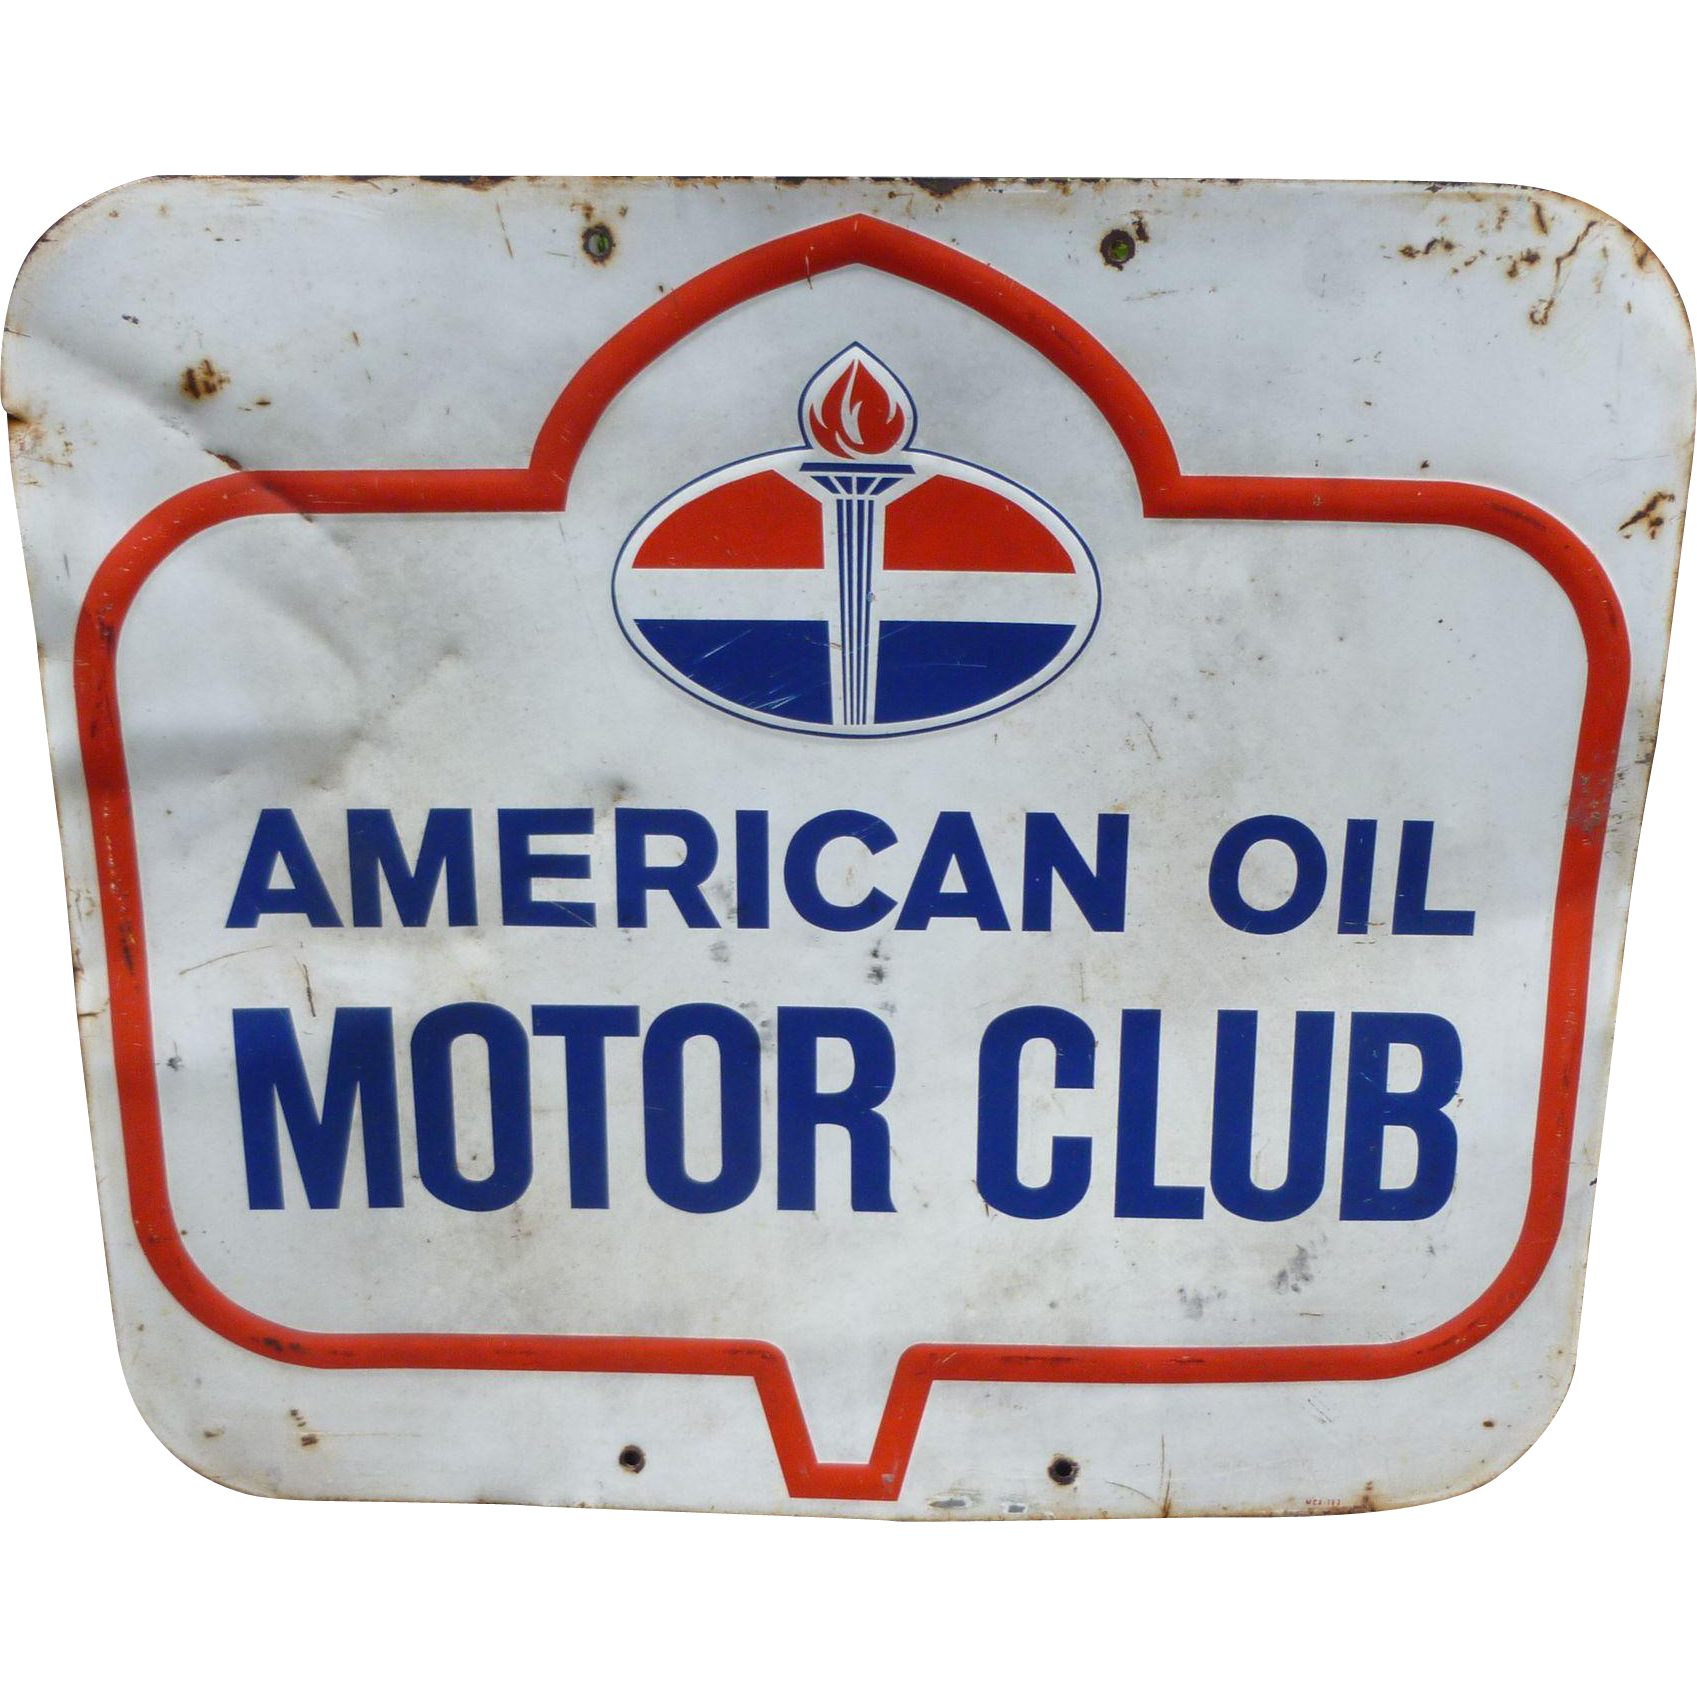 American Oil Motor Club Advertising Sign From